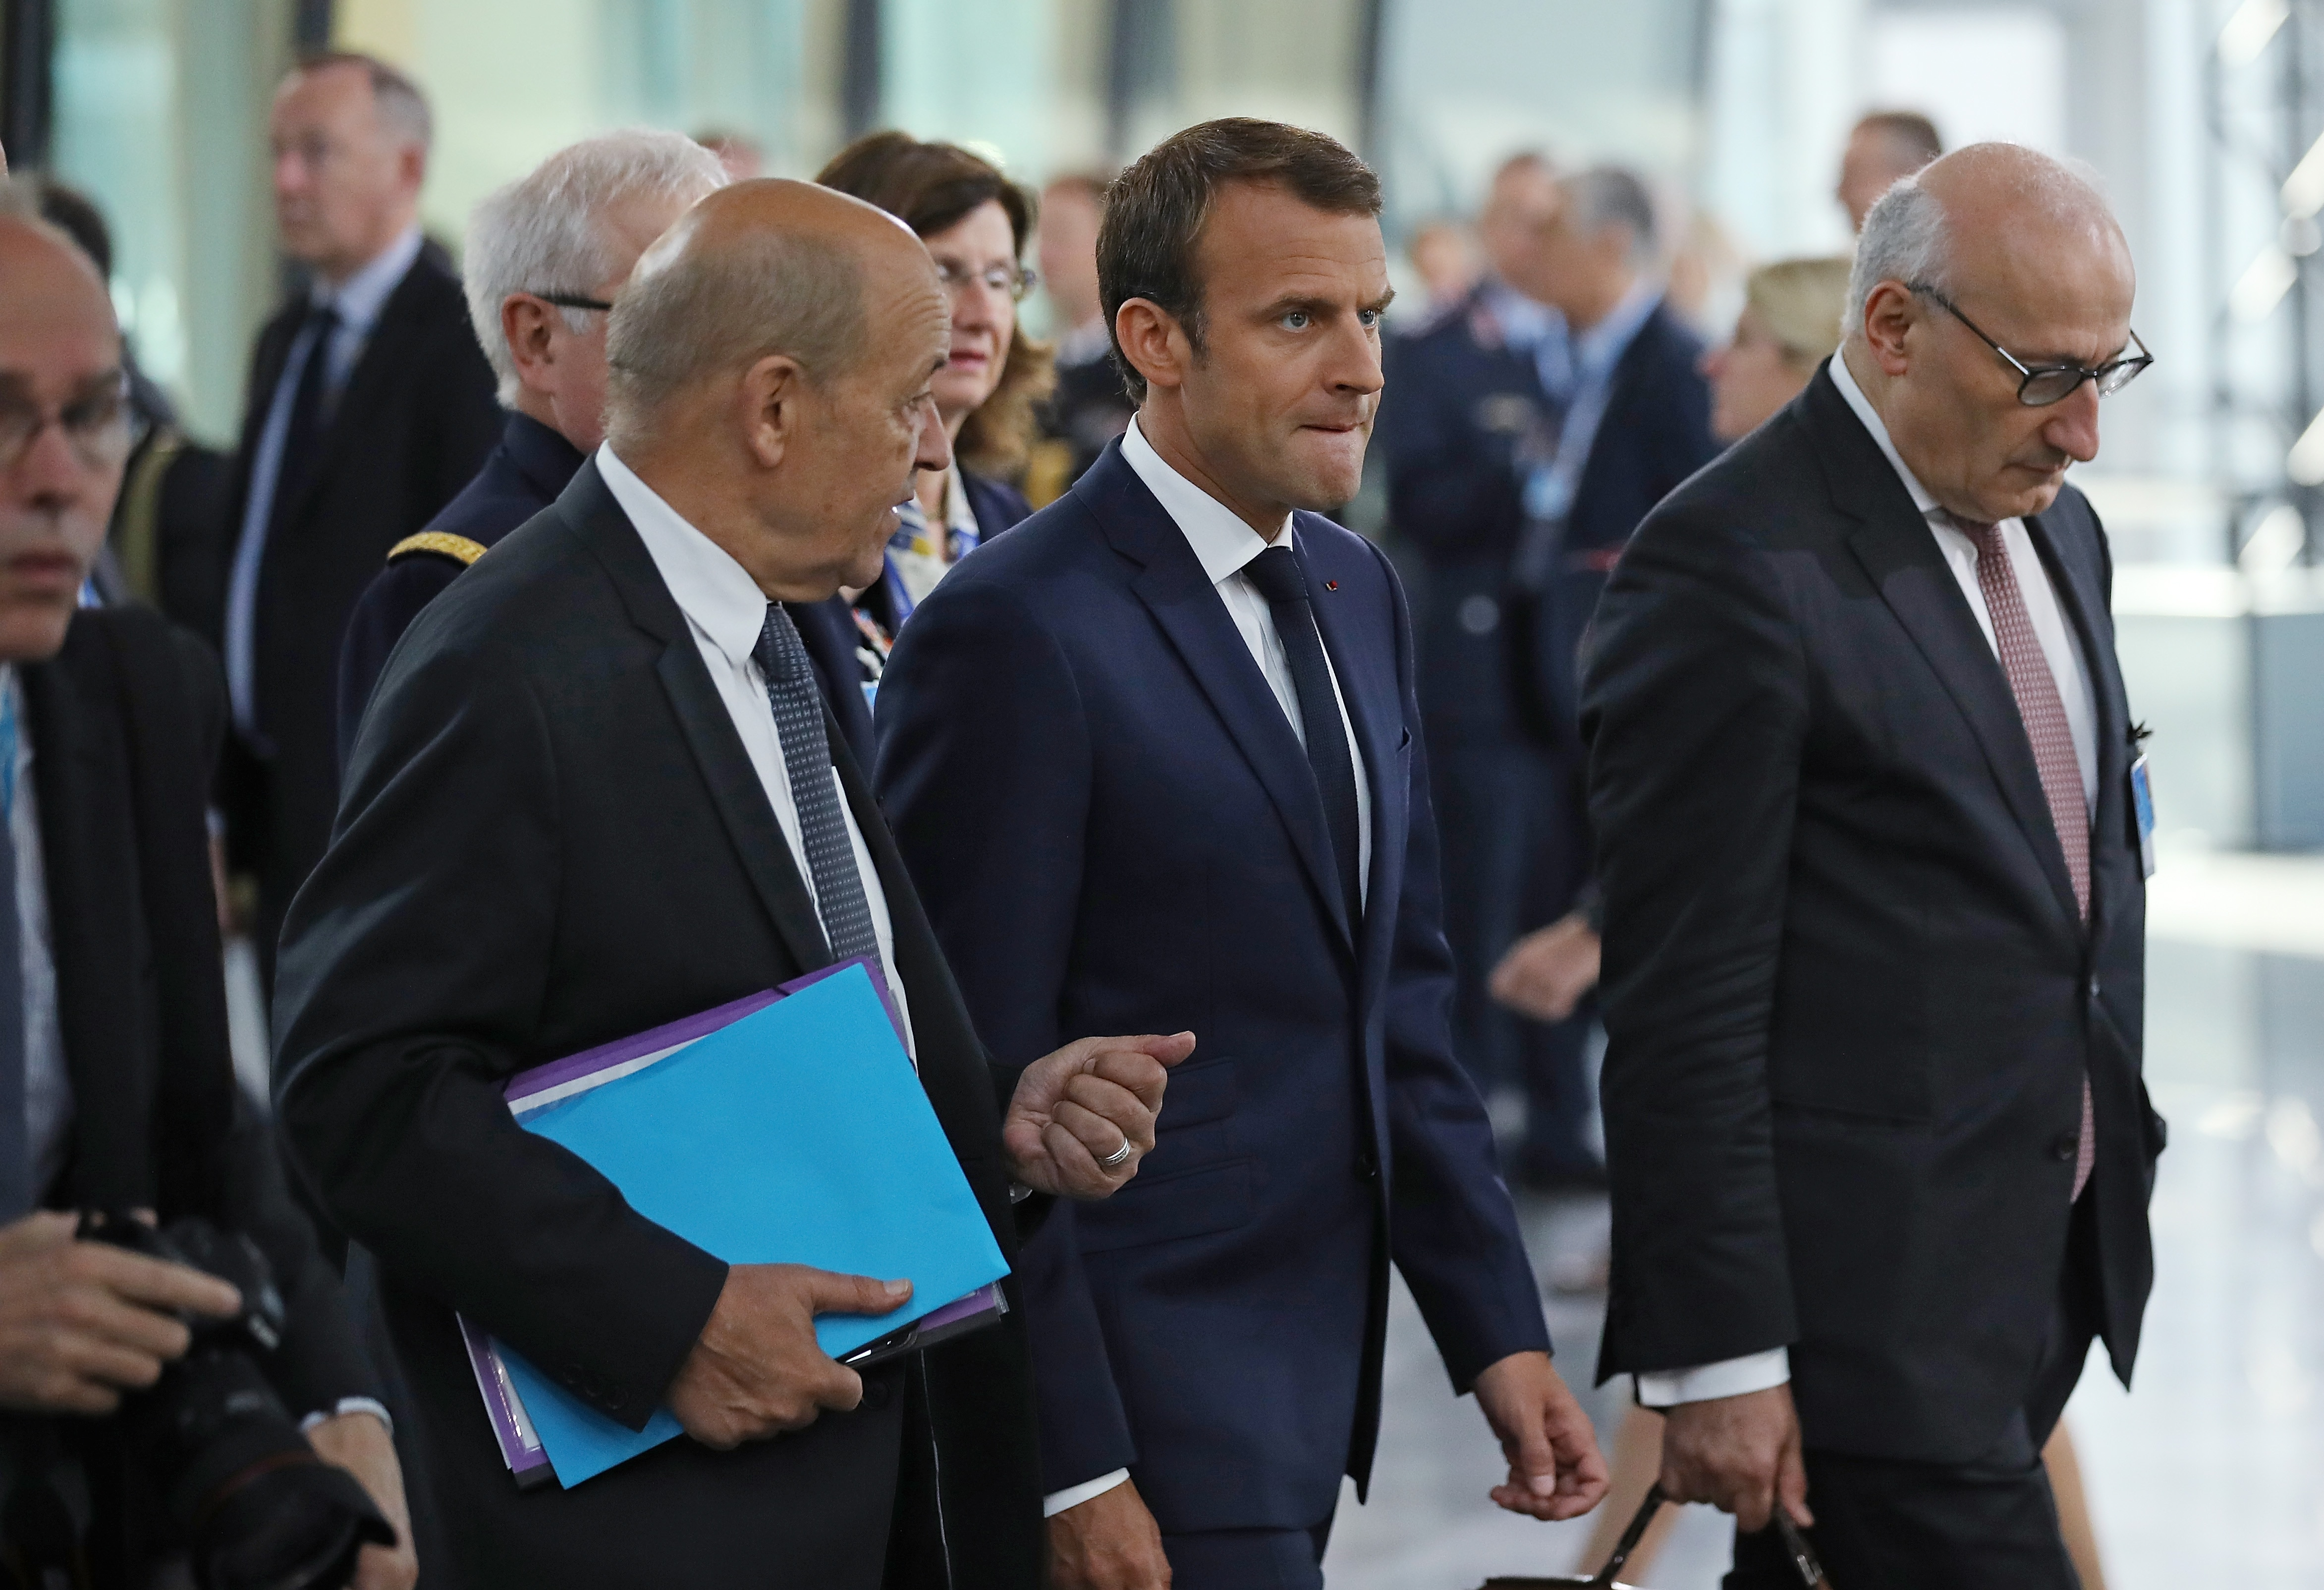 French President Emmanuel Macron arrives for a working session of NATO leaders in Brussels.